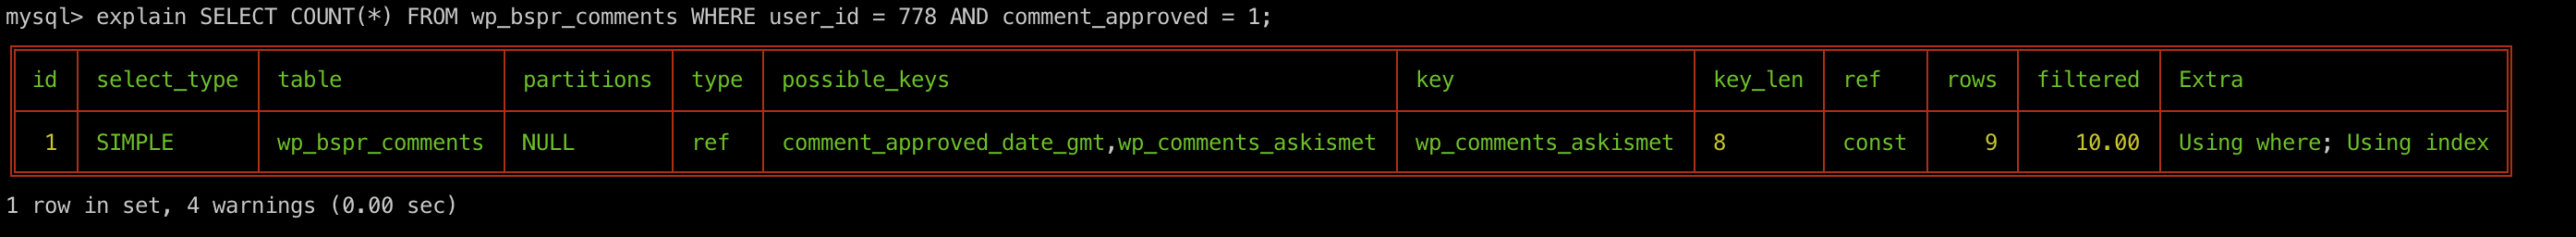 MySQL Explain on wp_comments with Aksimet after index